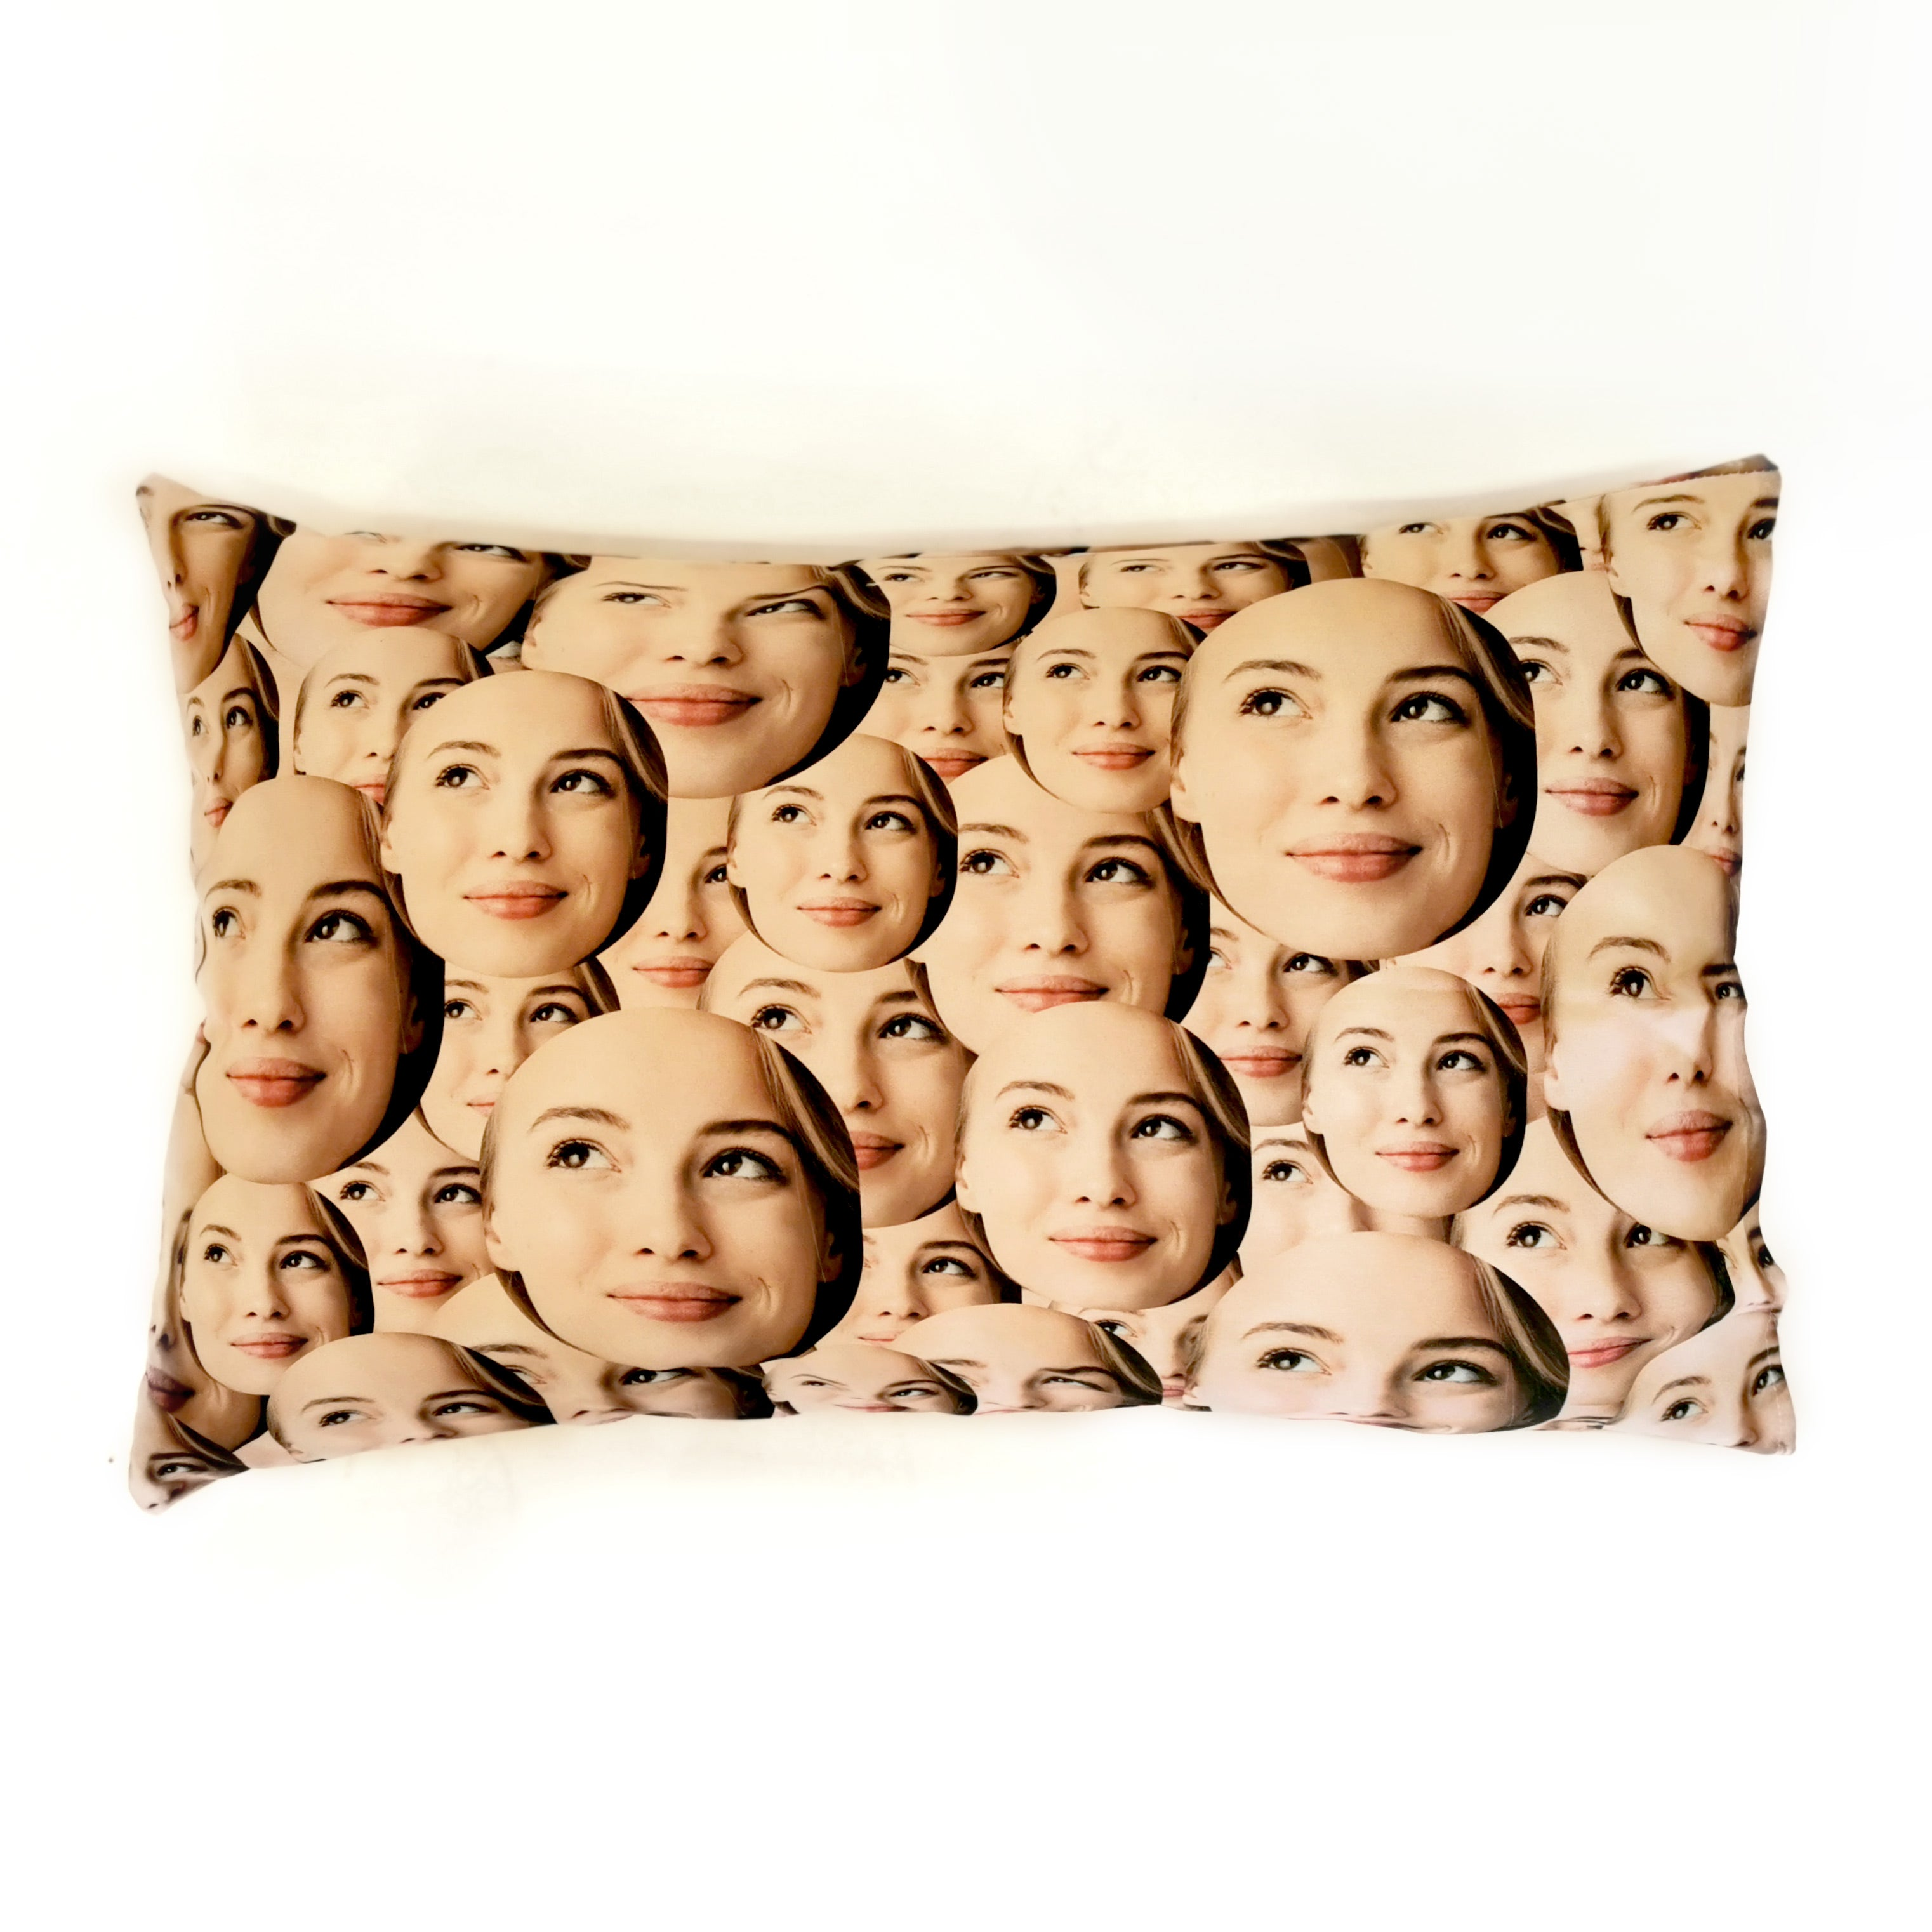 Your Face All Over - Pillow Case